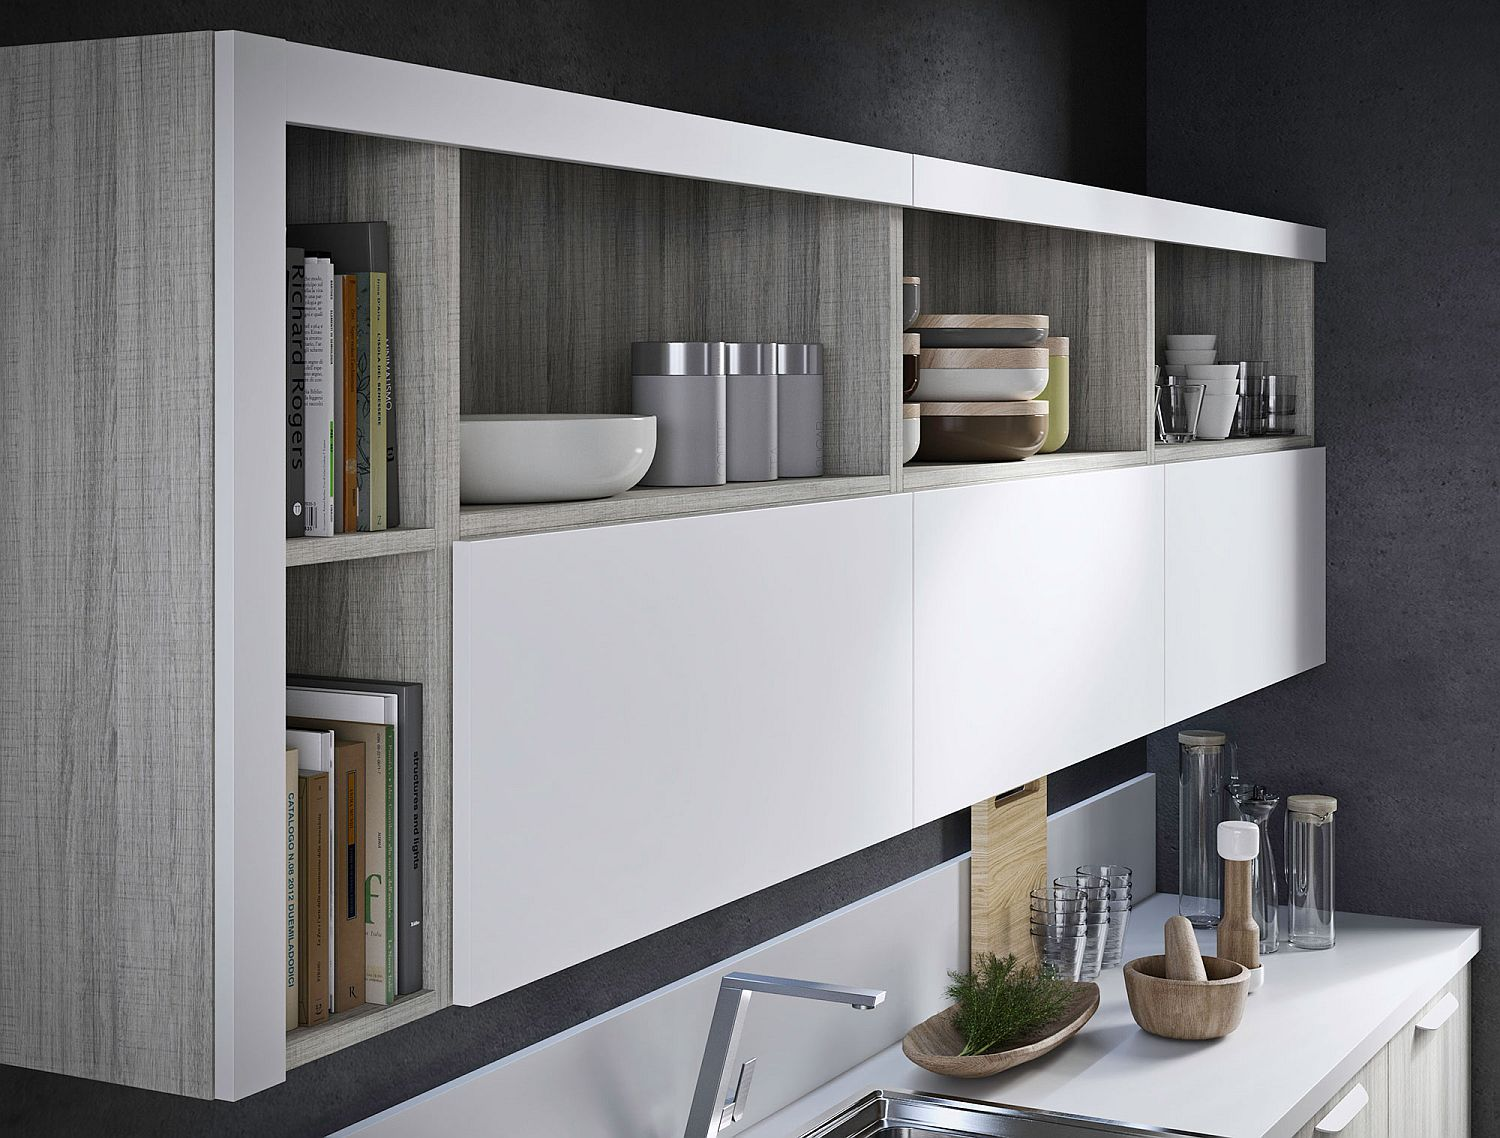 Open shelving along with closed cabinets of the Fun kitchen